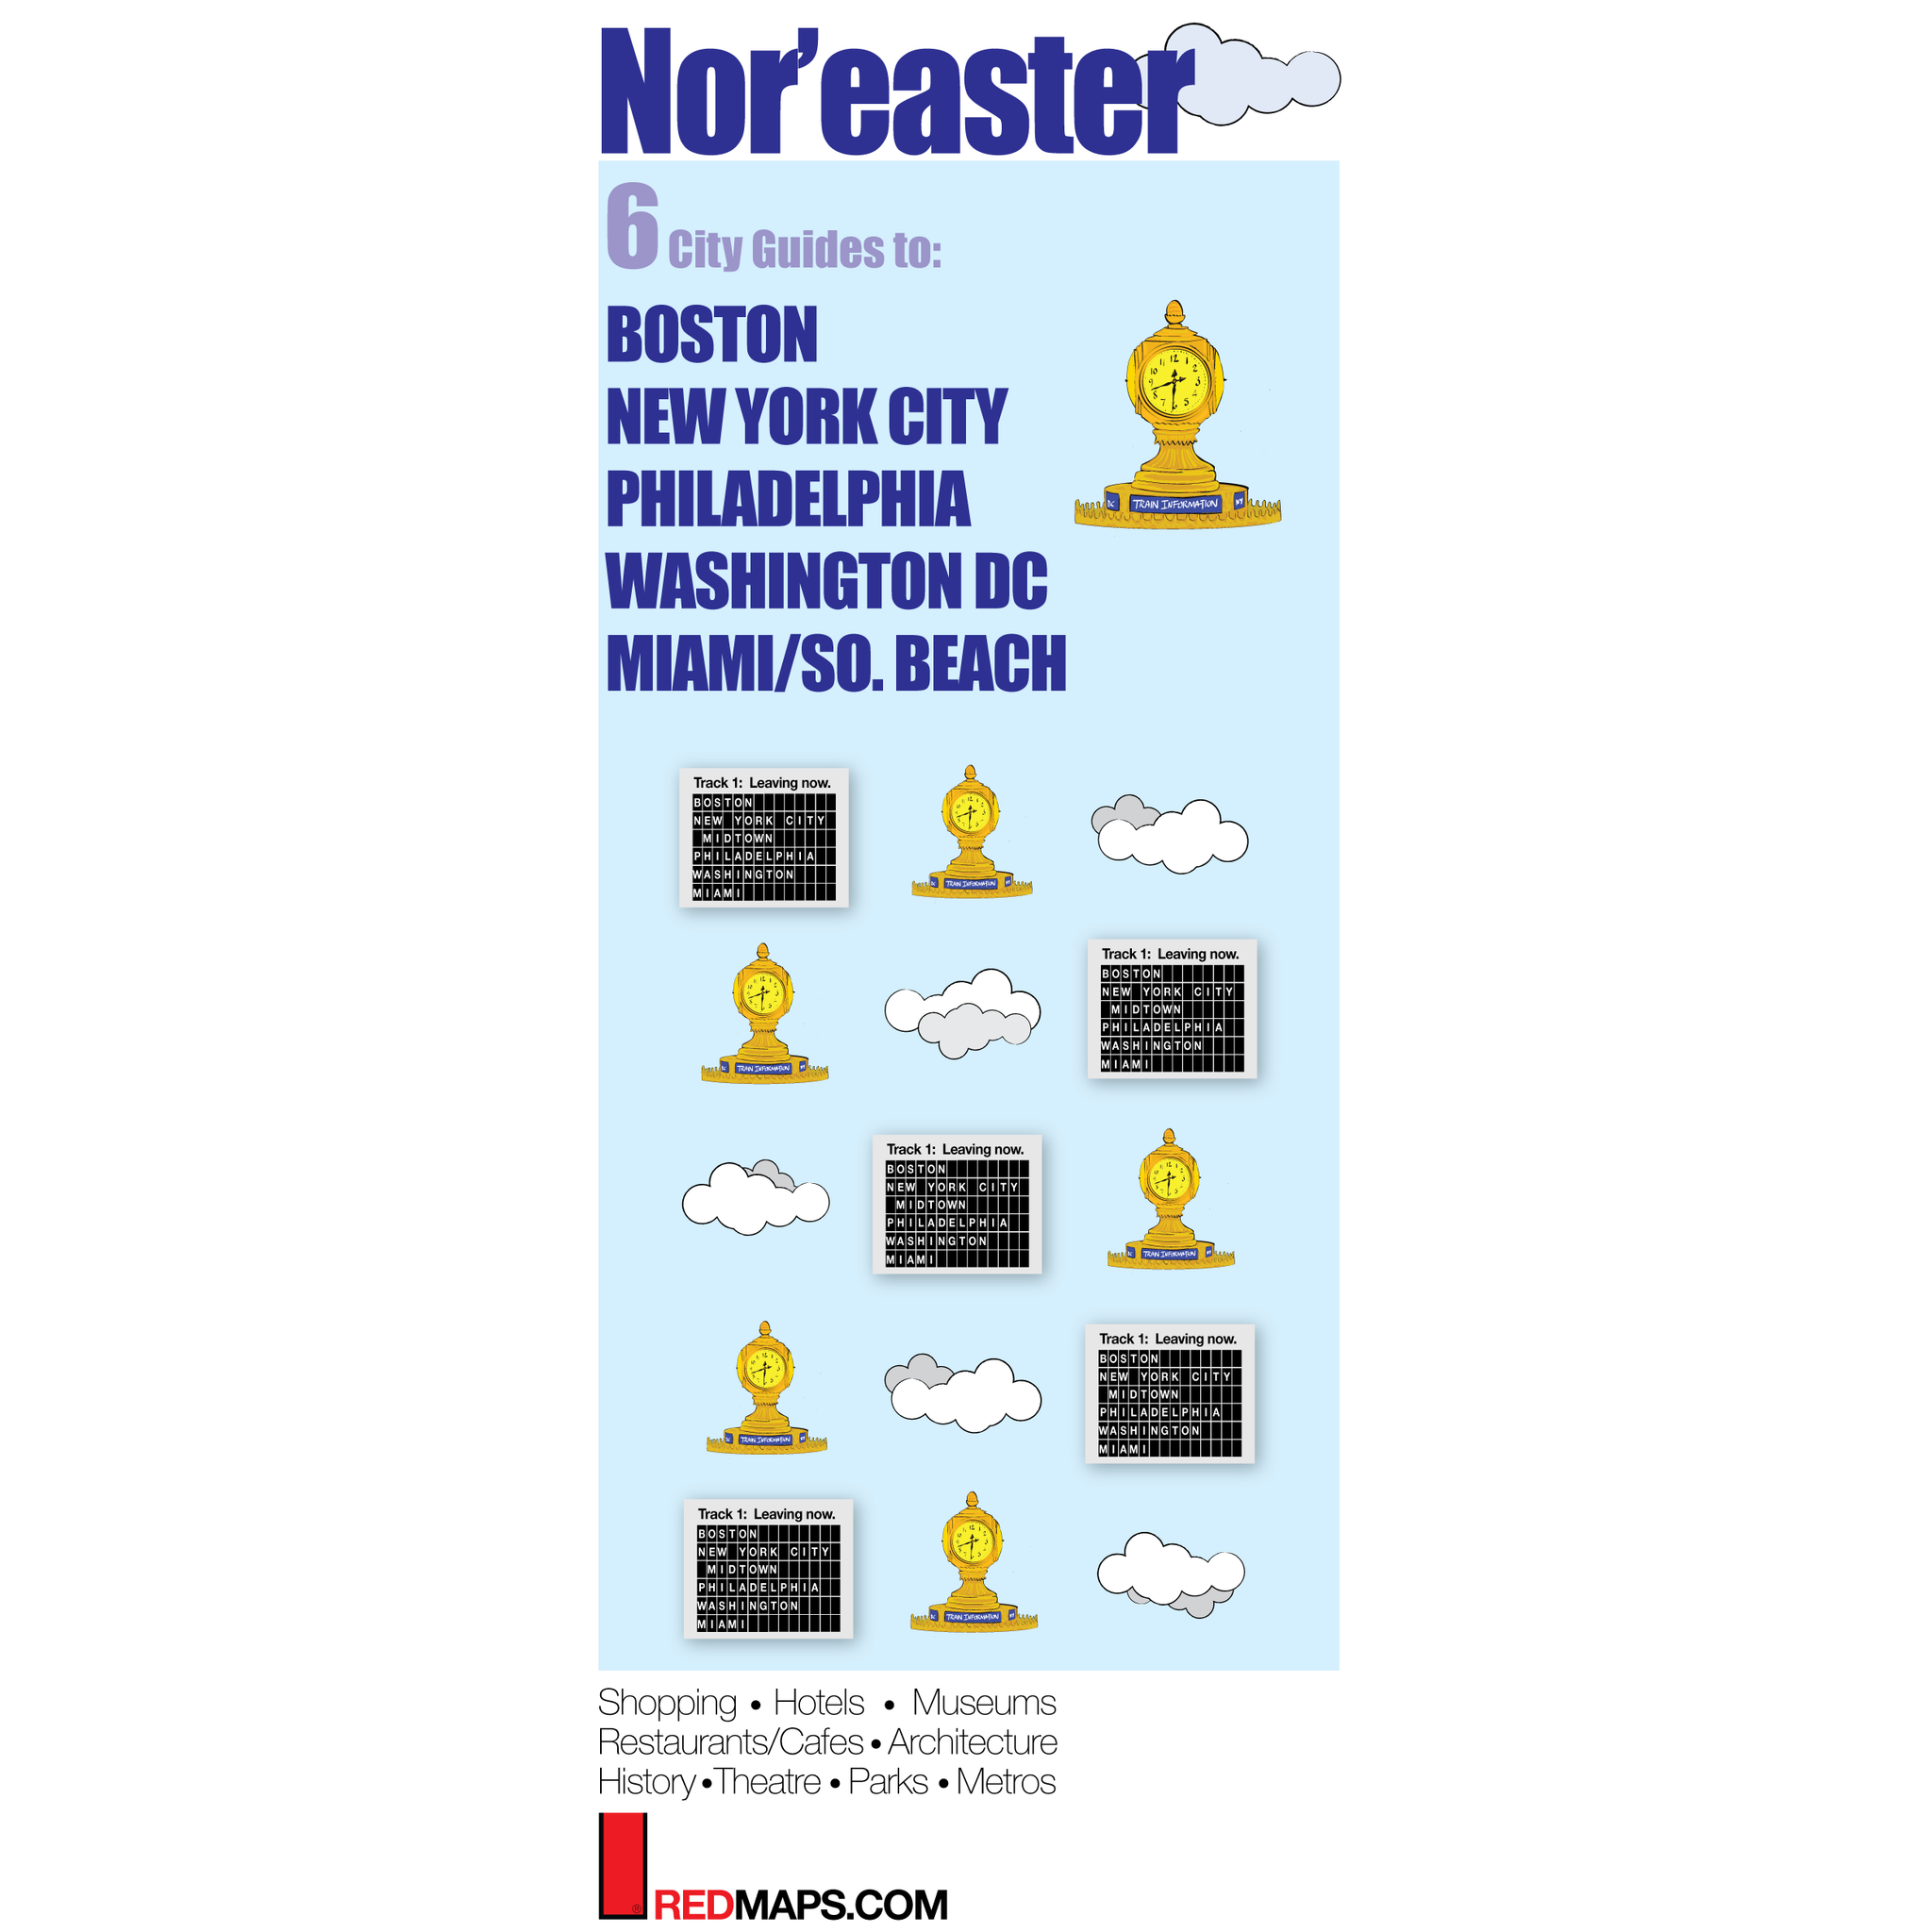 Multi-City map set called Nor'easter with 6 cultural guides to Boston, NYC, Philadelphia, Washington,DC and Miami